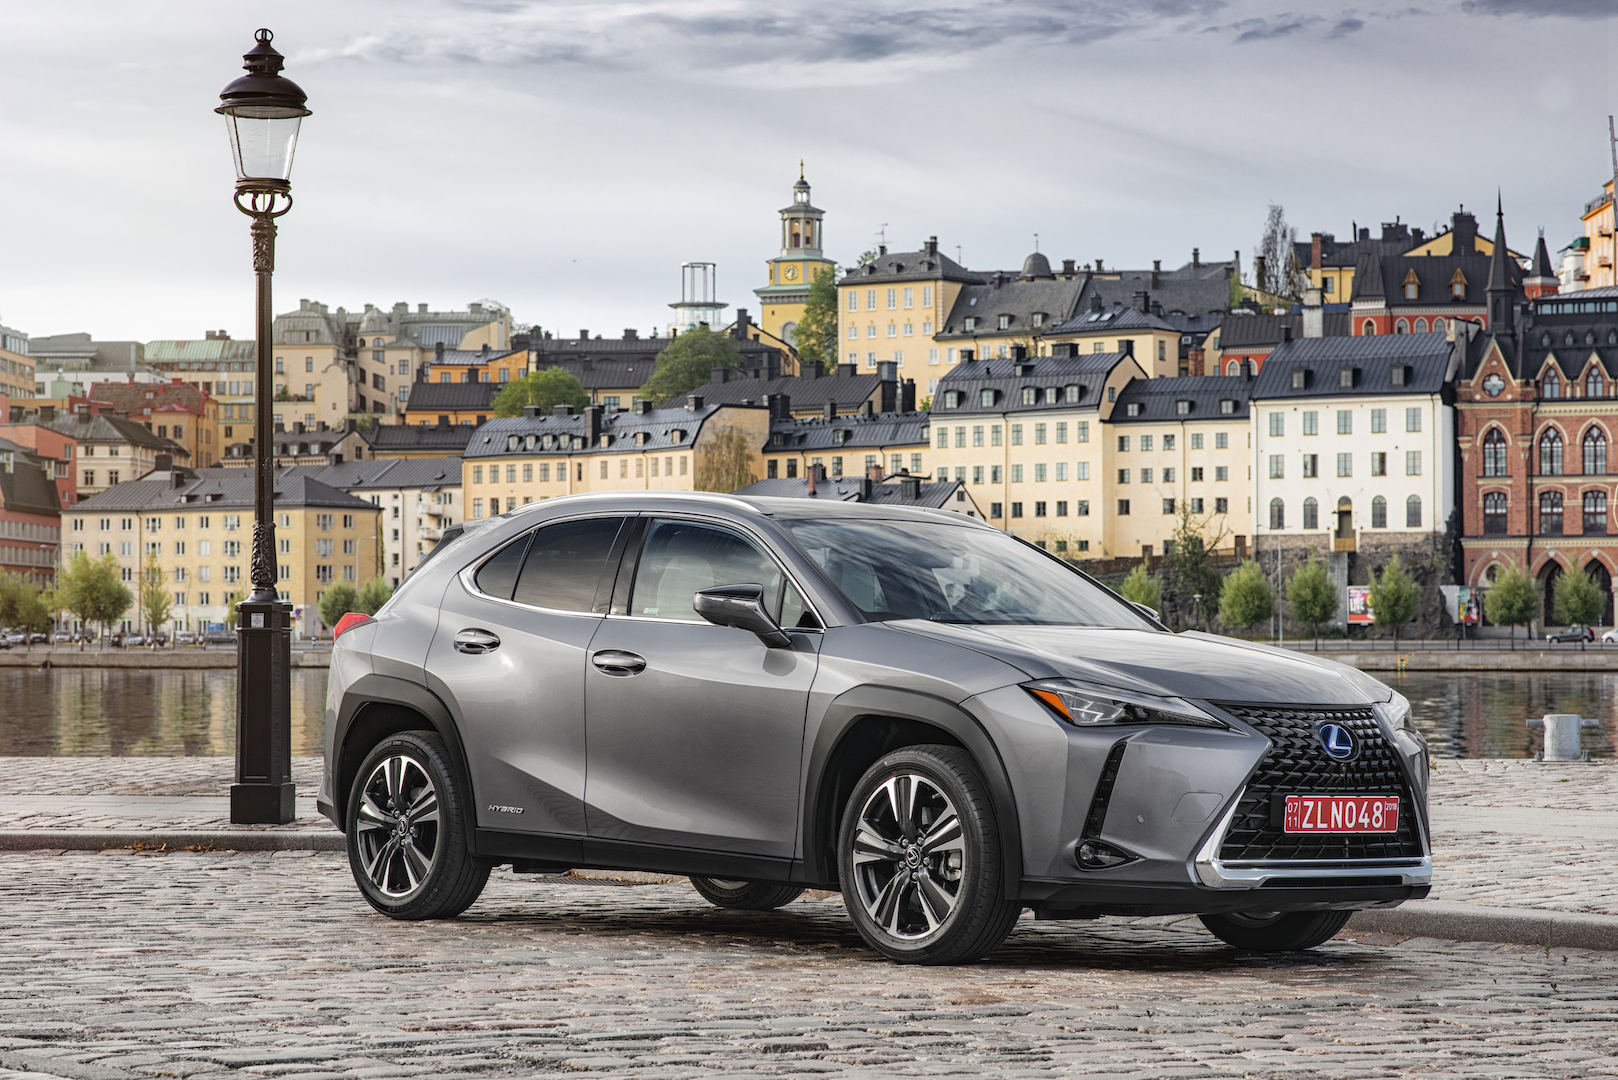 BMW Maintenance Program >> Lexus launches subscription service, limited to UX crossover